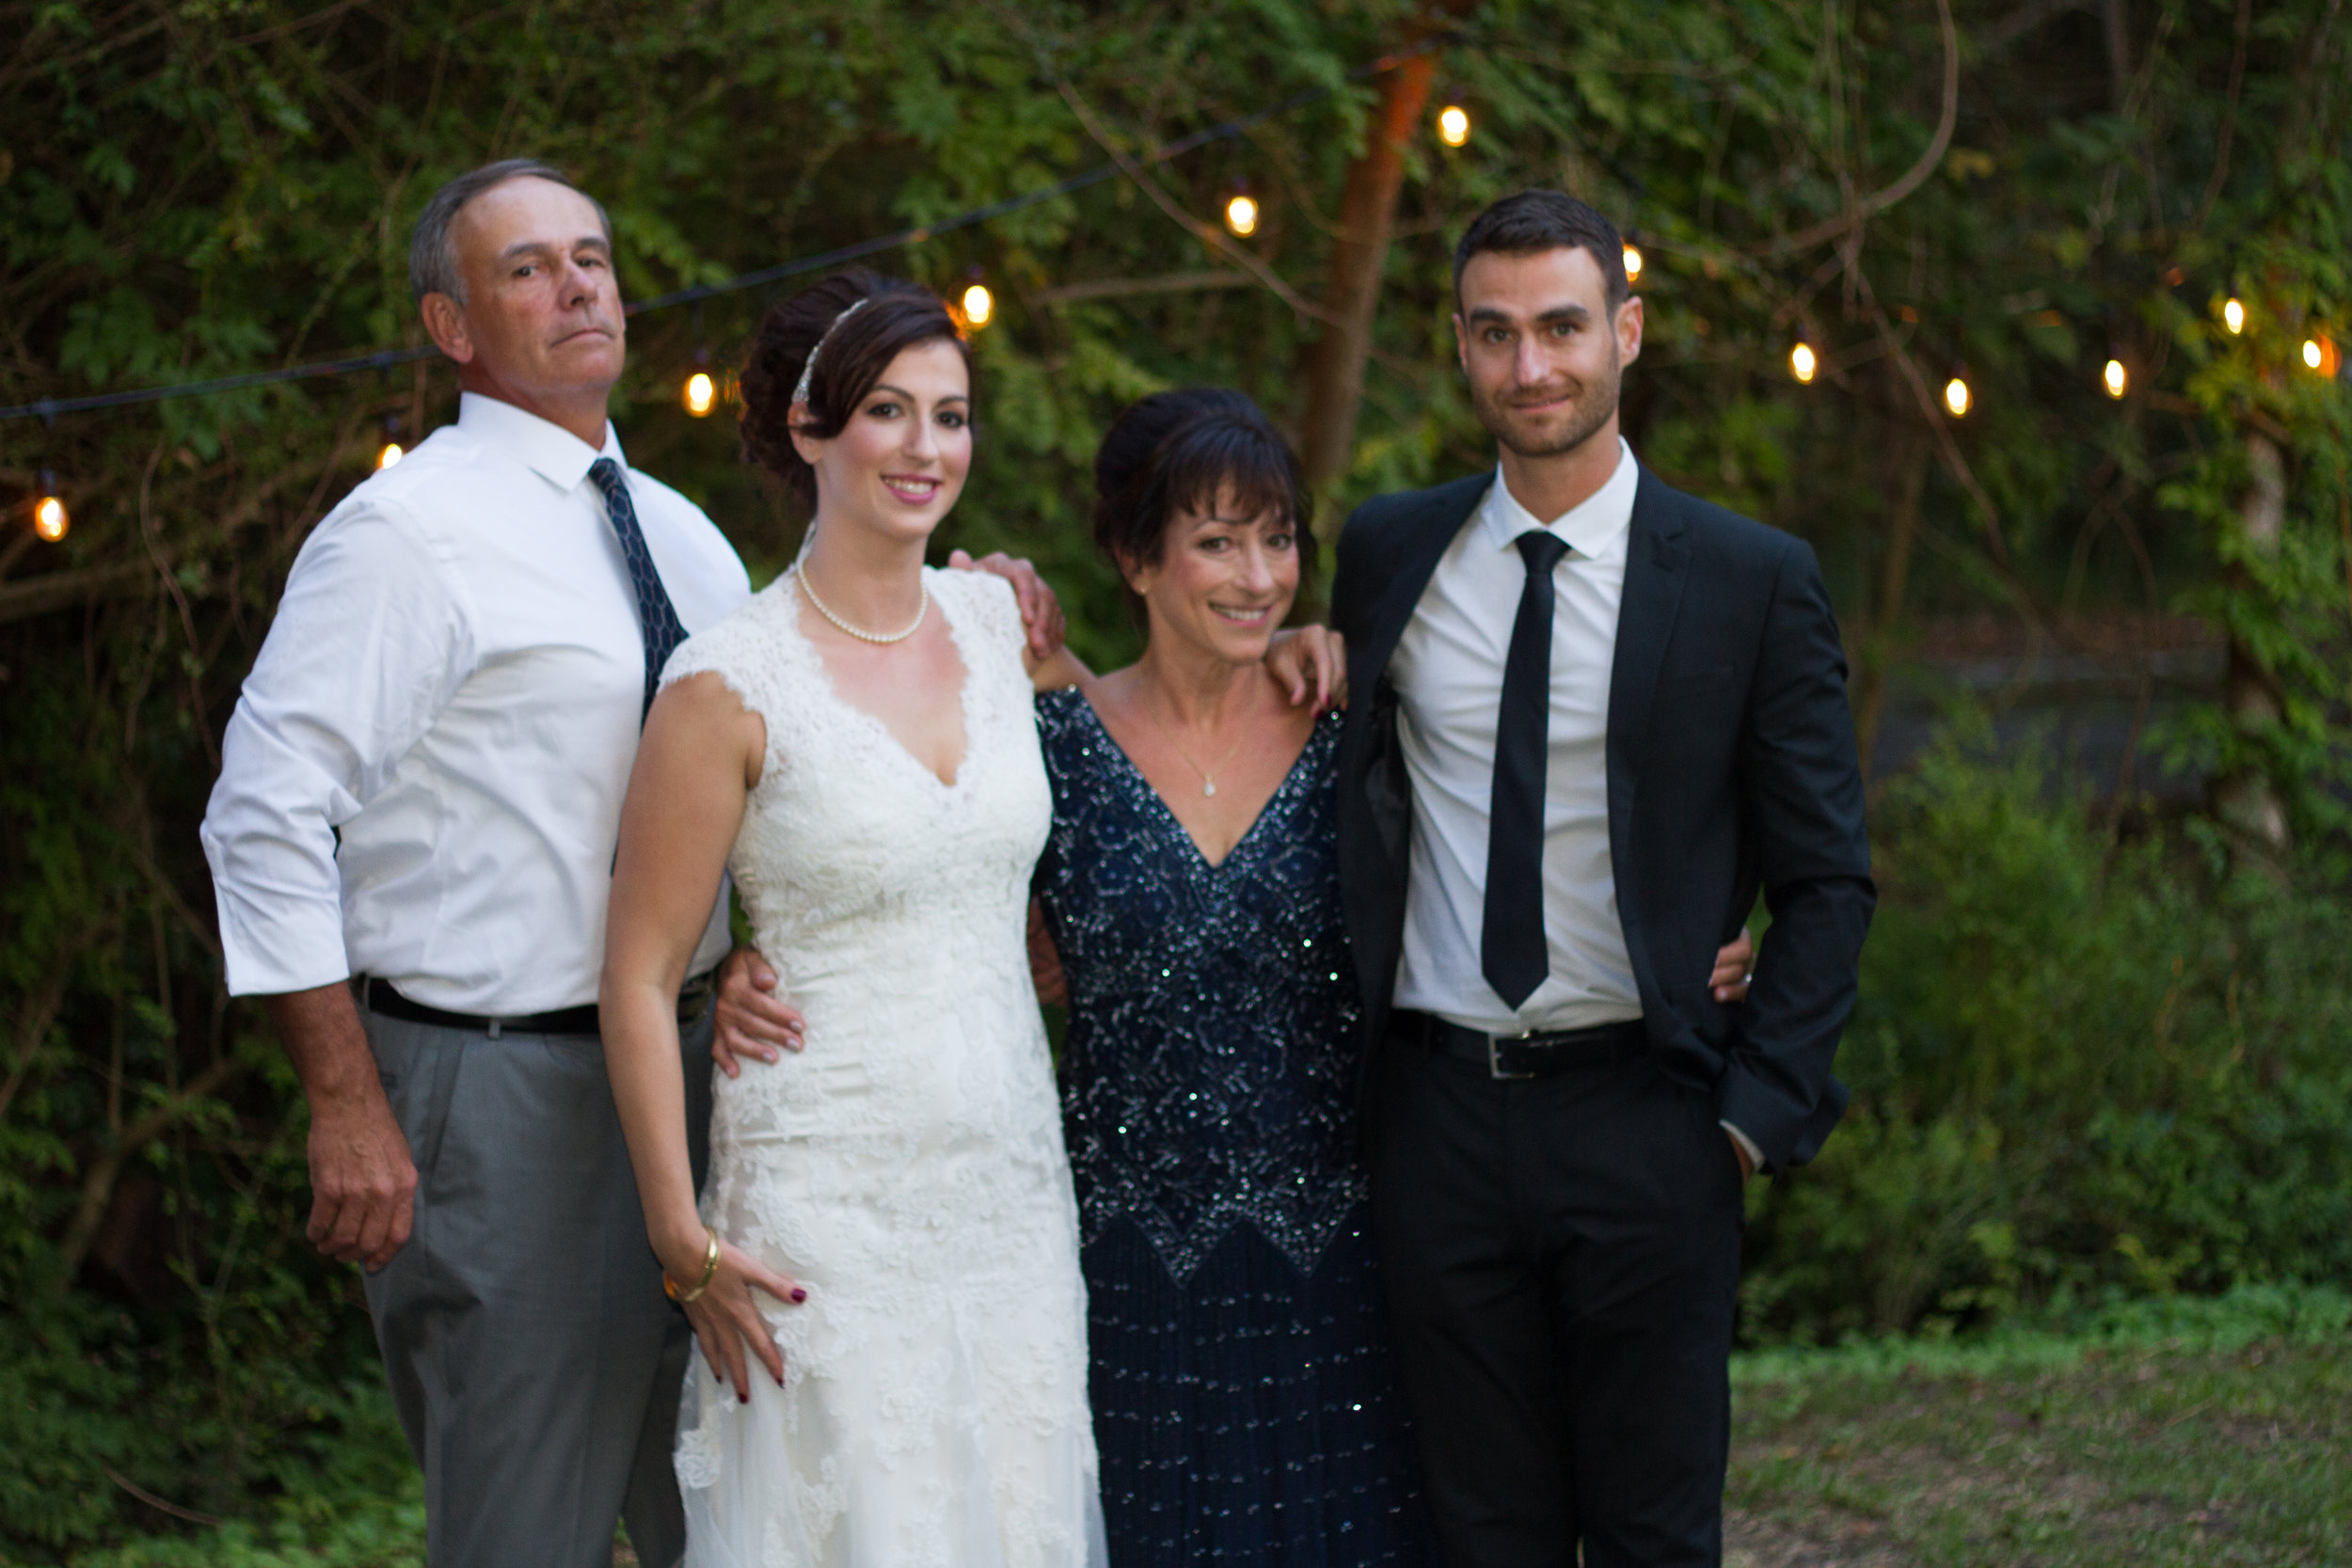 Jacqueline and Shawn Wedding (417 of 597).jpg